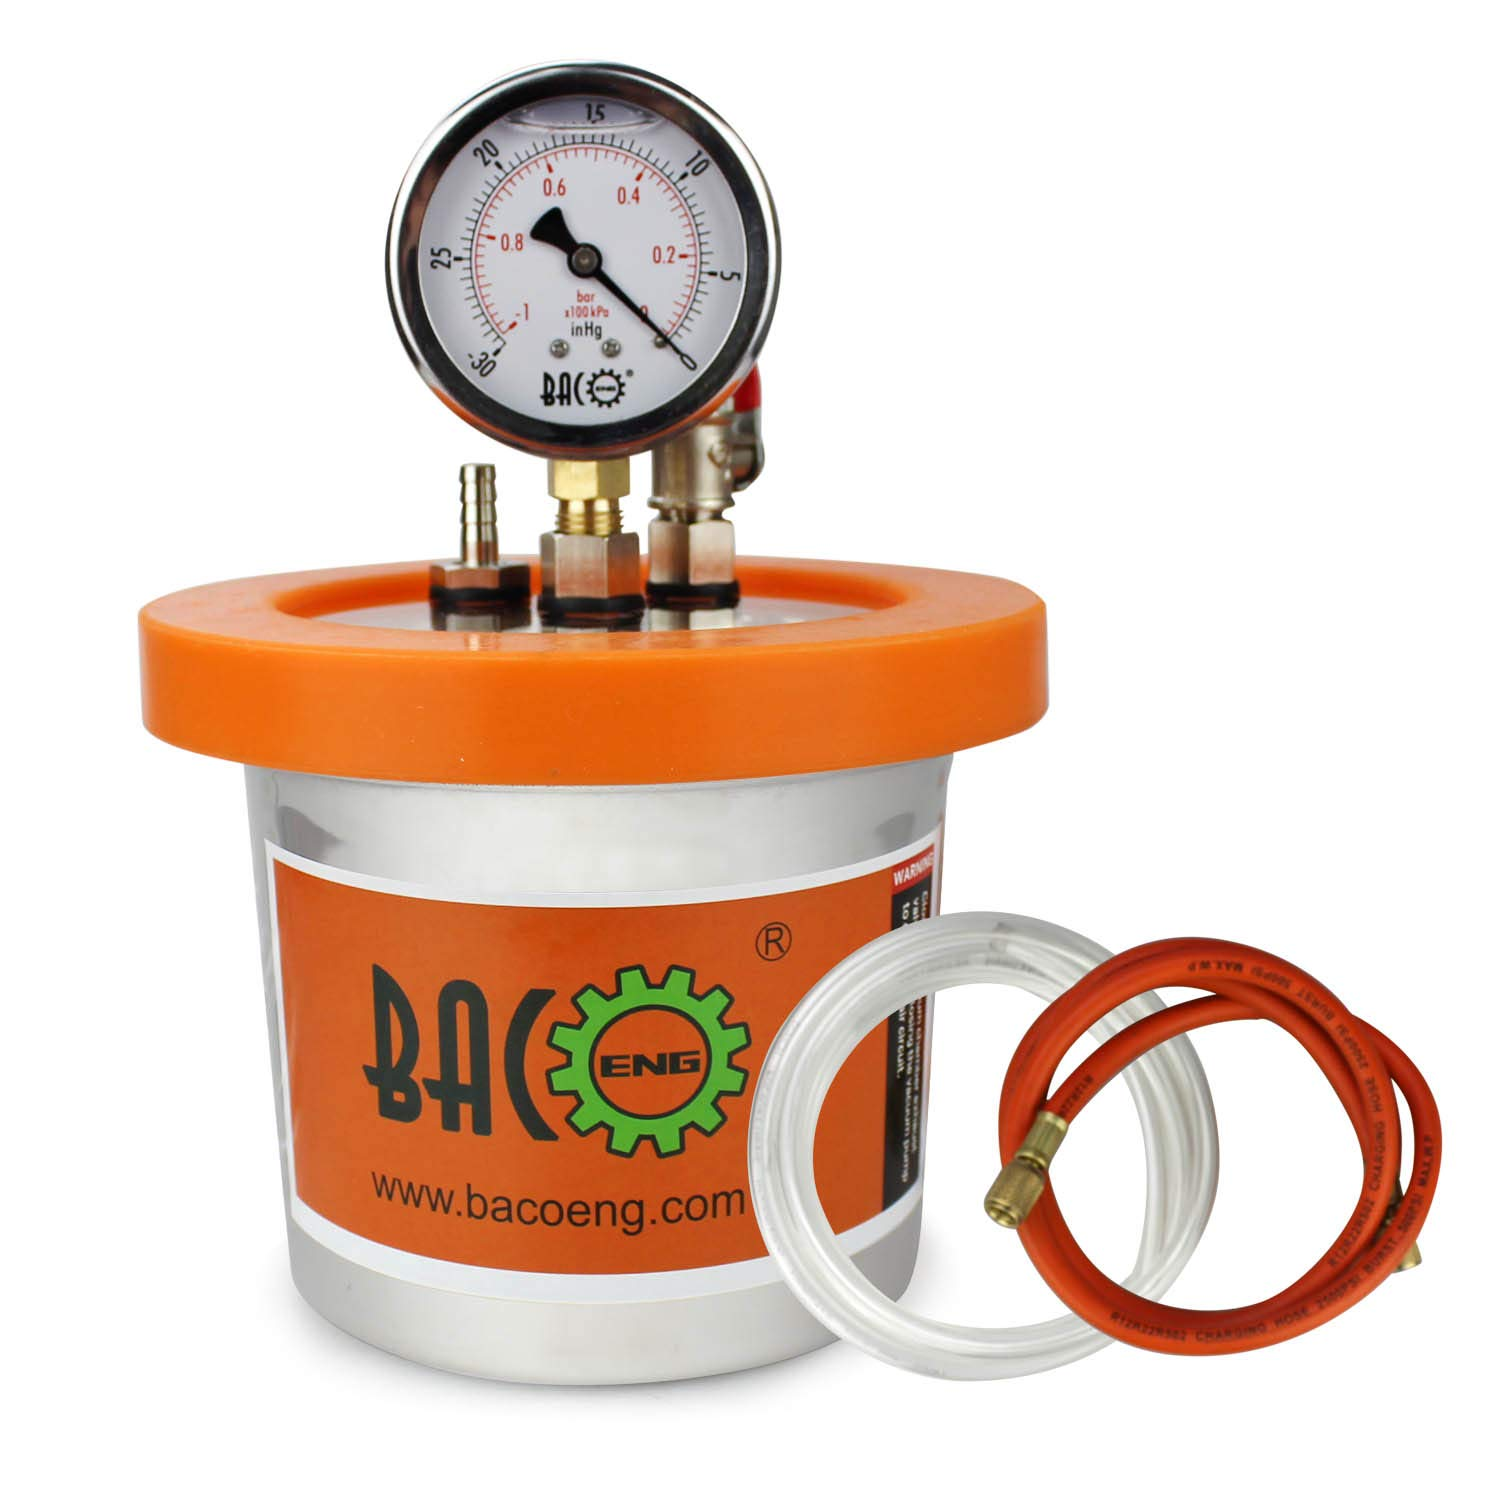 BACOENG 1.2 QT Stainless Steel Resin Trap Vacuum Degassing Chamber (3 Gallon/1.2 QT/2 QT Available) ...